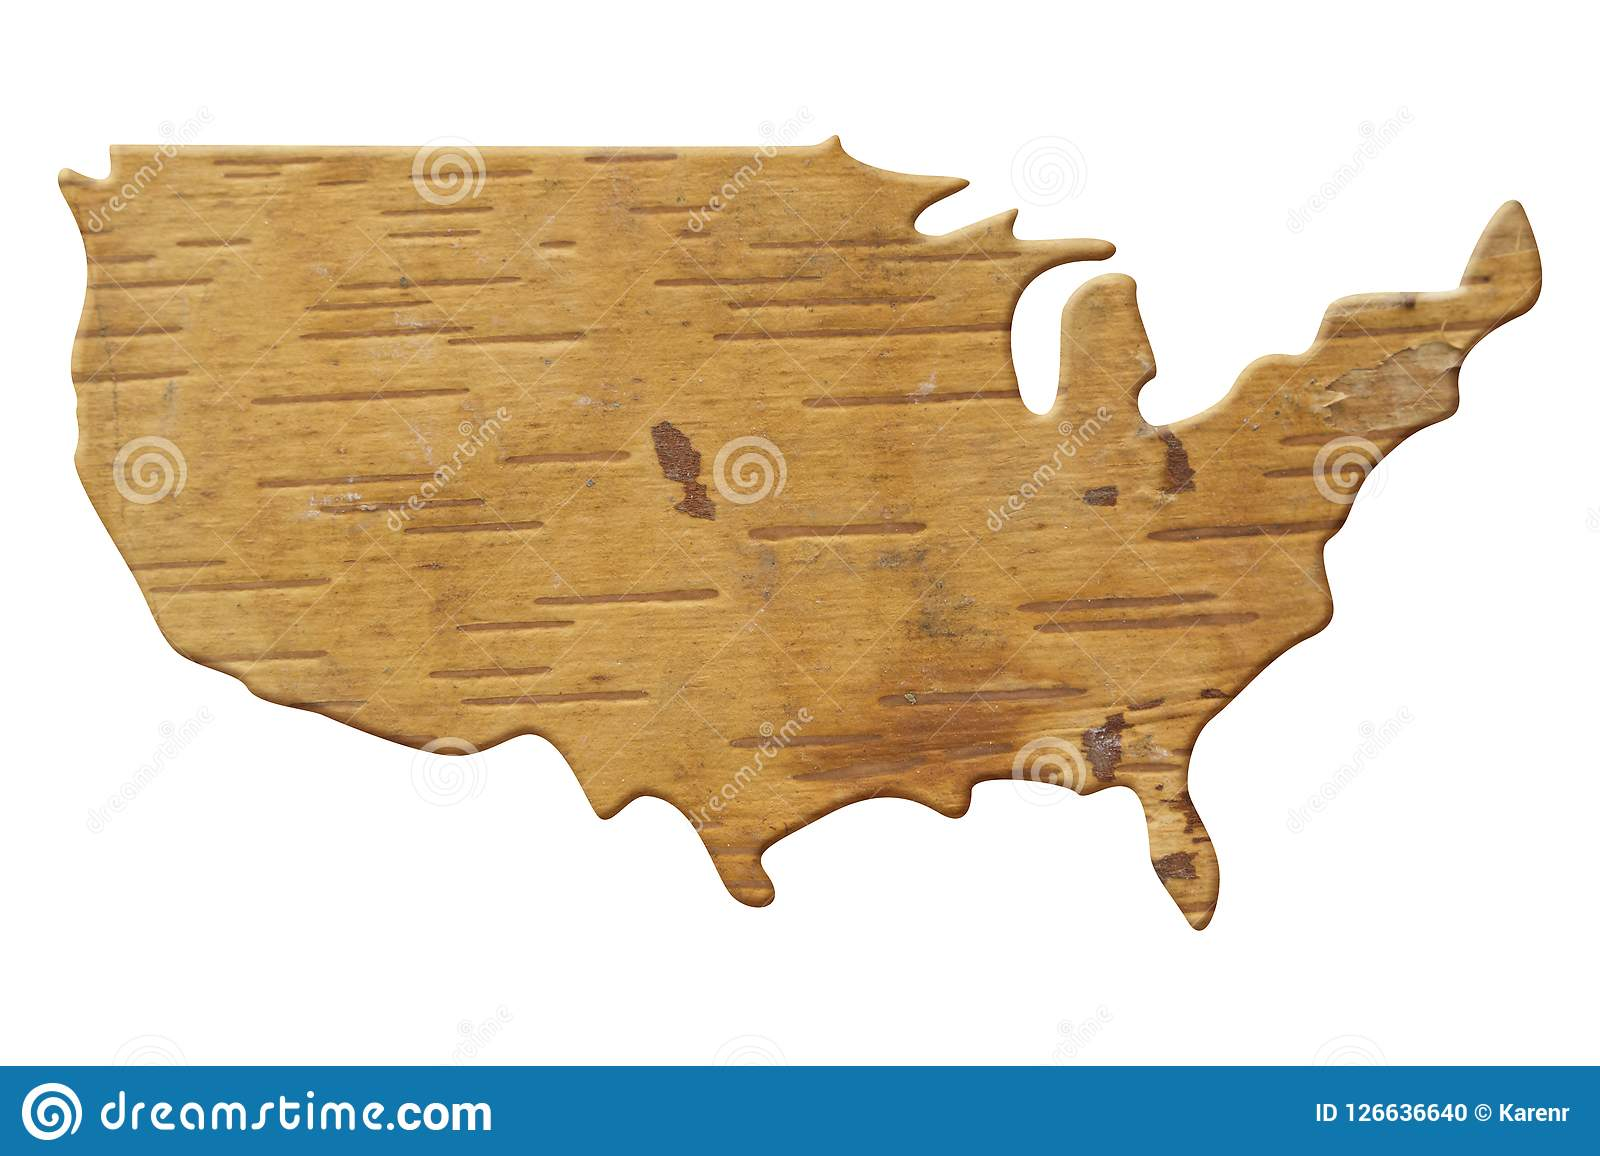 Map Of Country Usa.Map To The Country Usa In Wood Stock Photo Image Of States